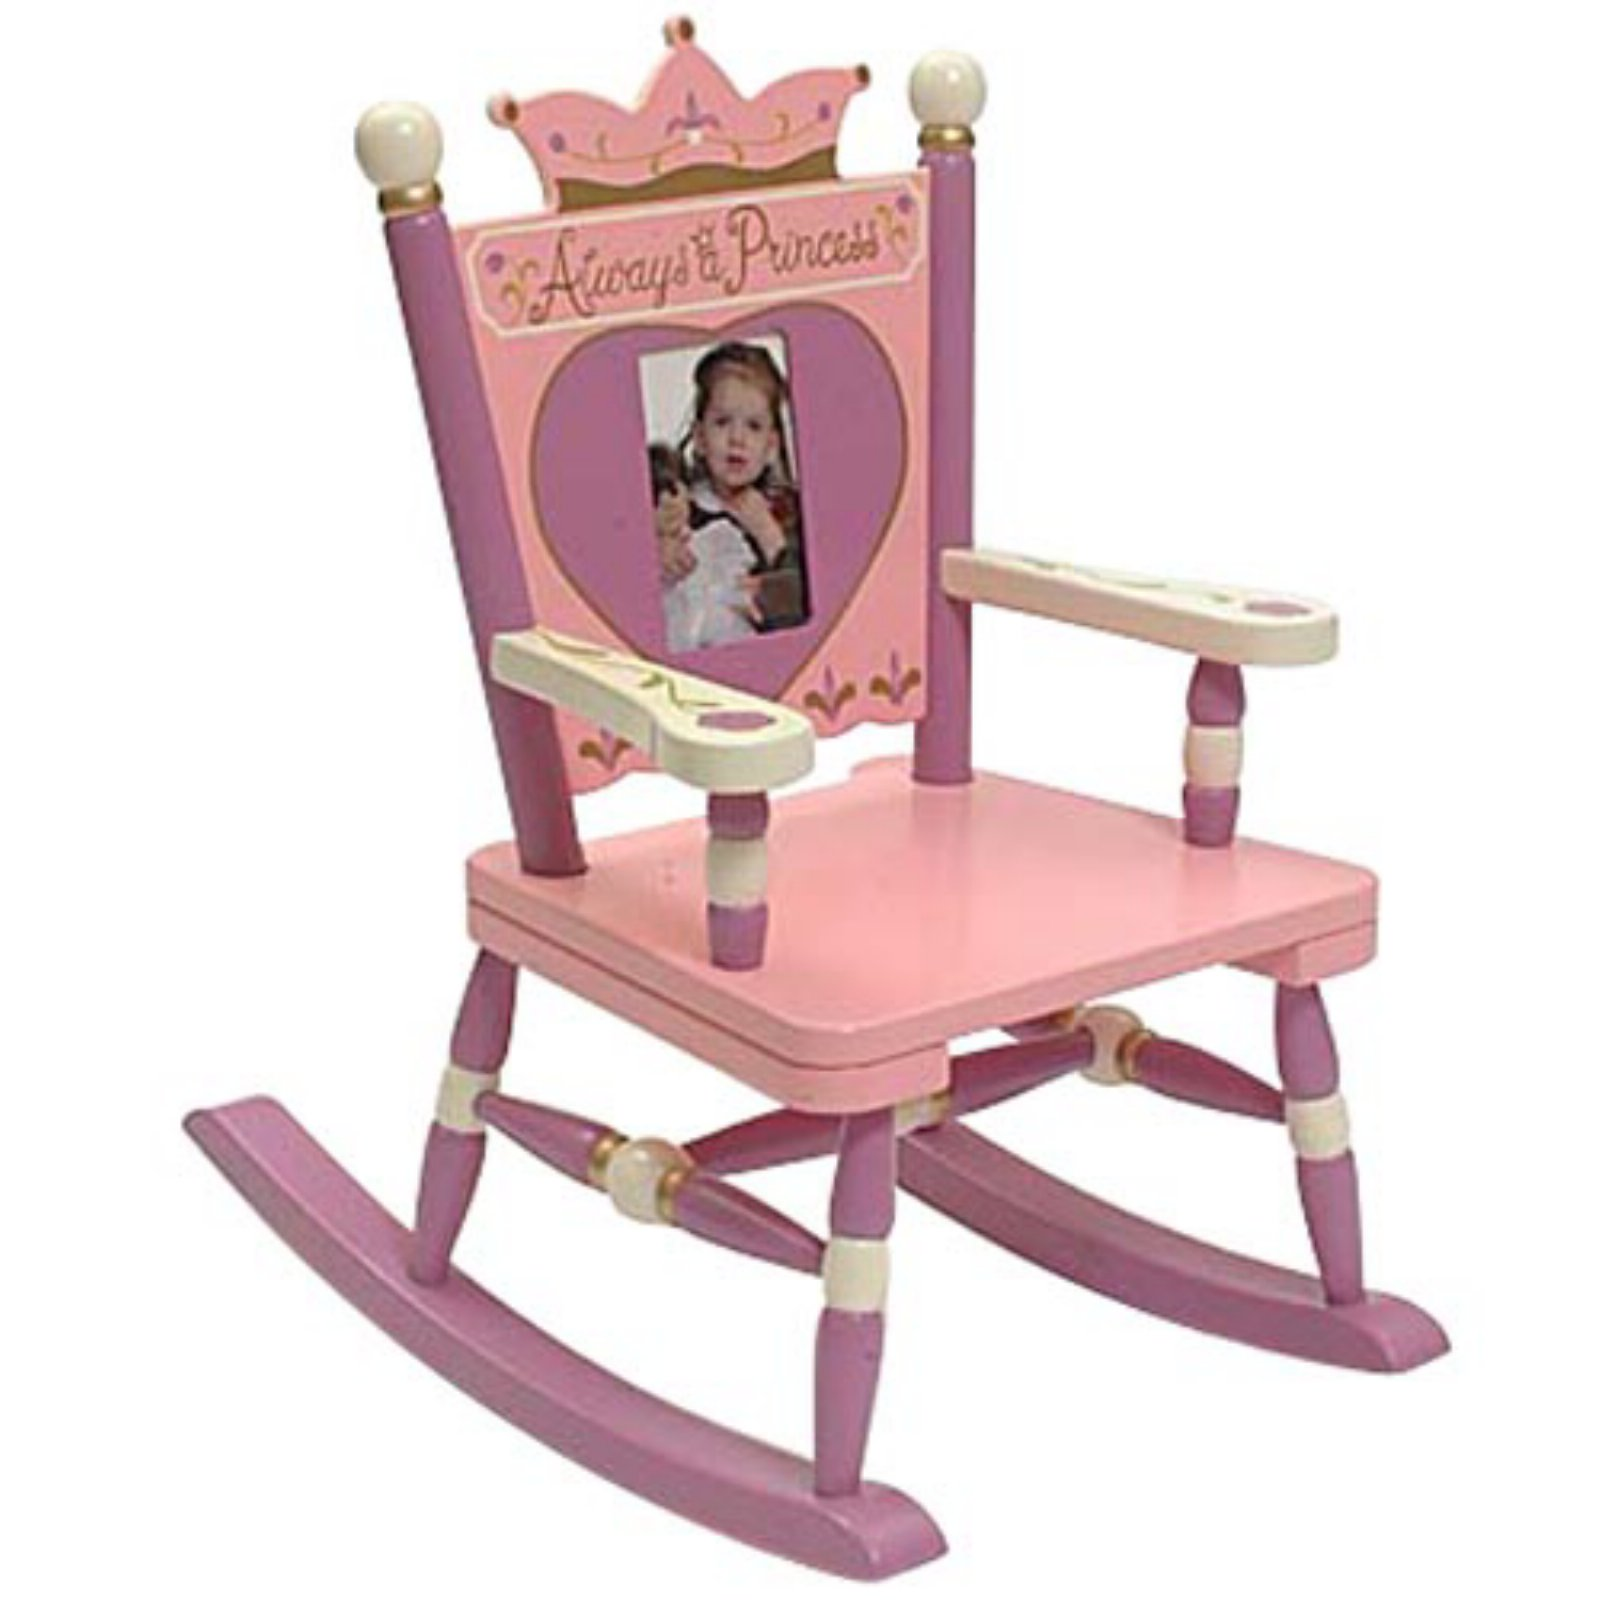 Wildkin Princess Mini Rocking Chair